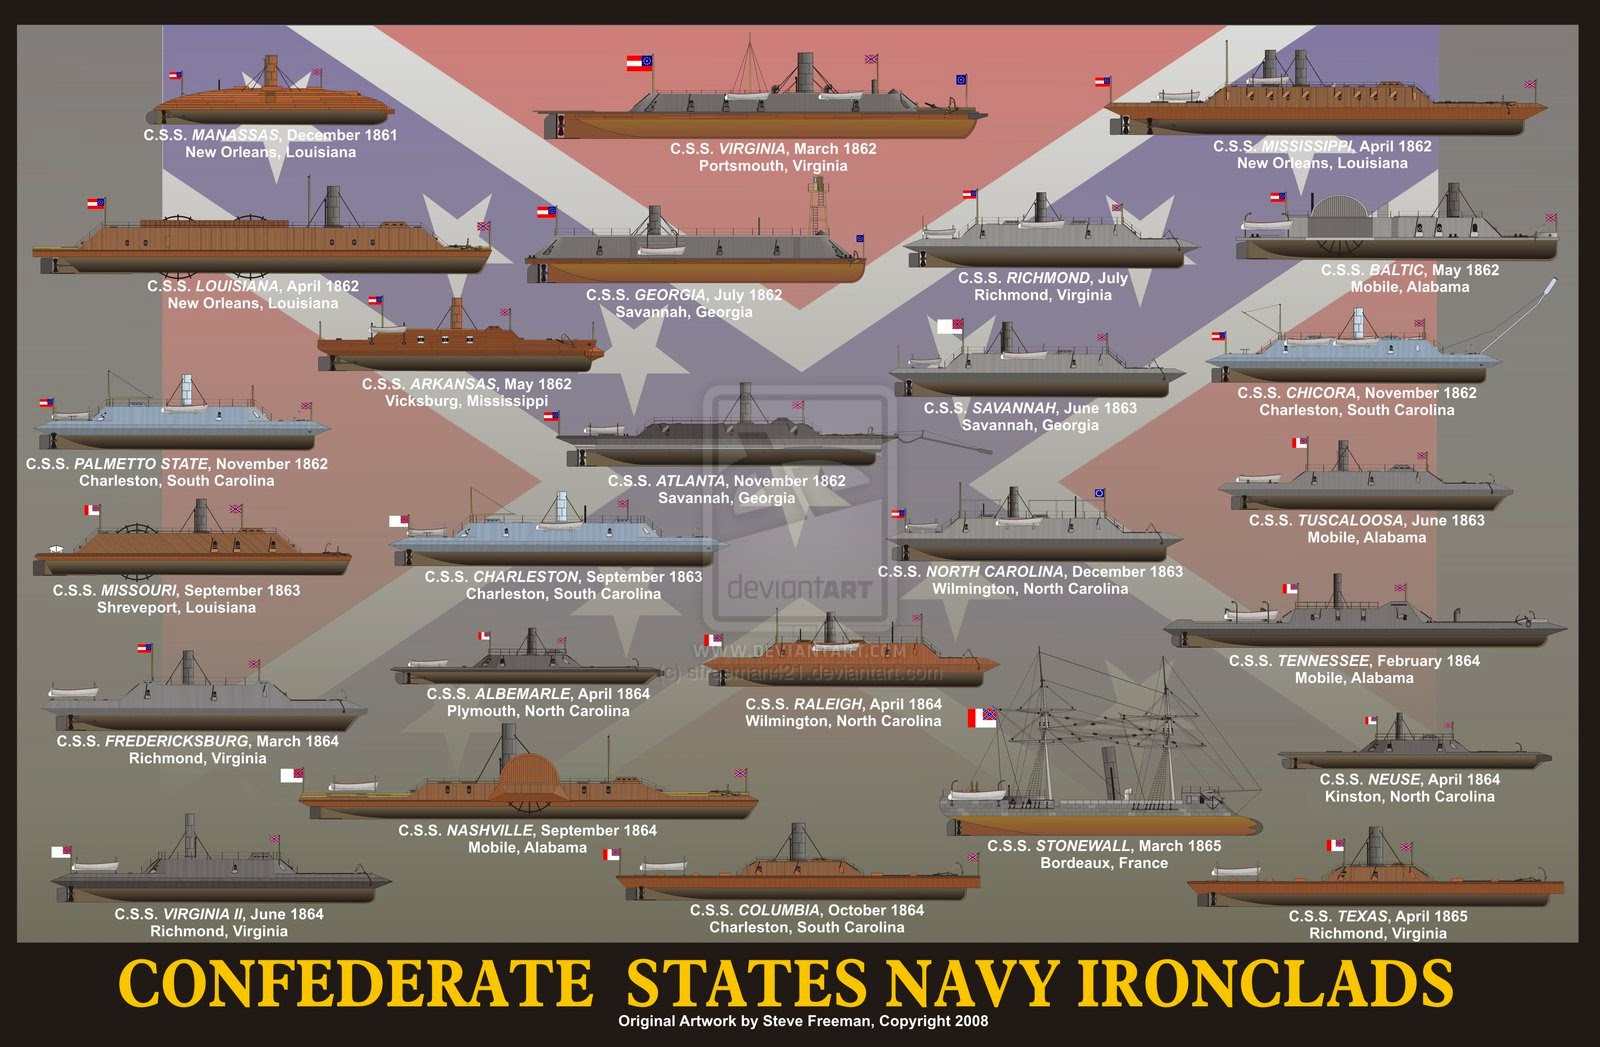 the development of ironclads was an example of